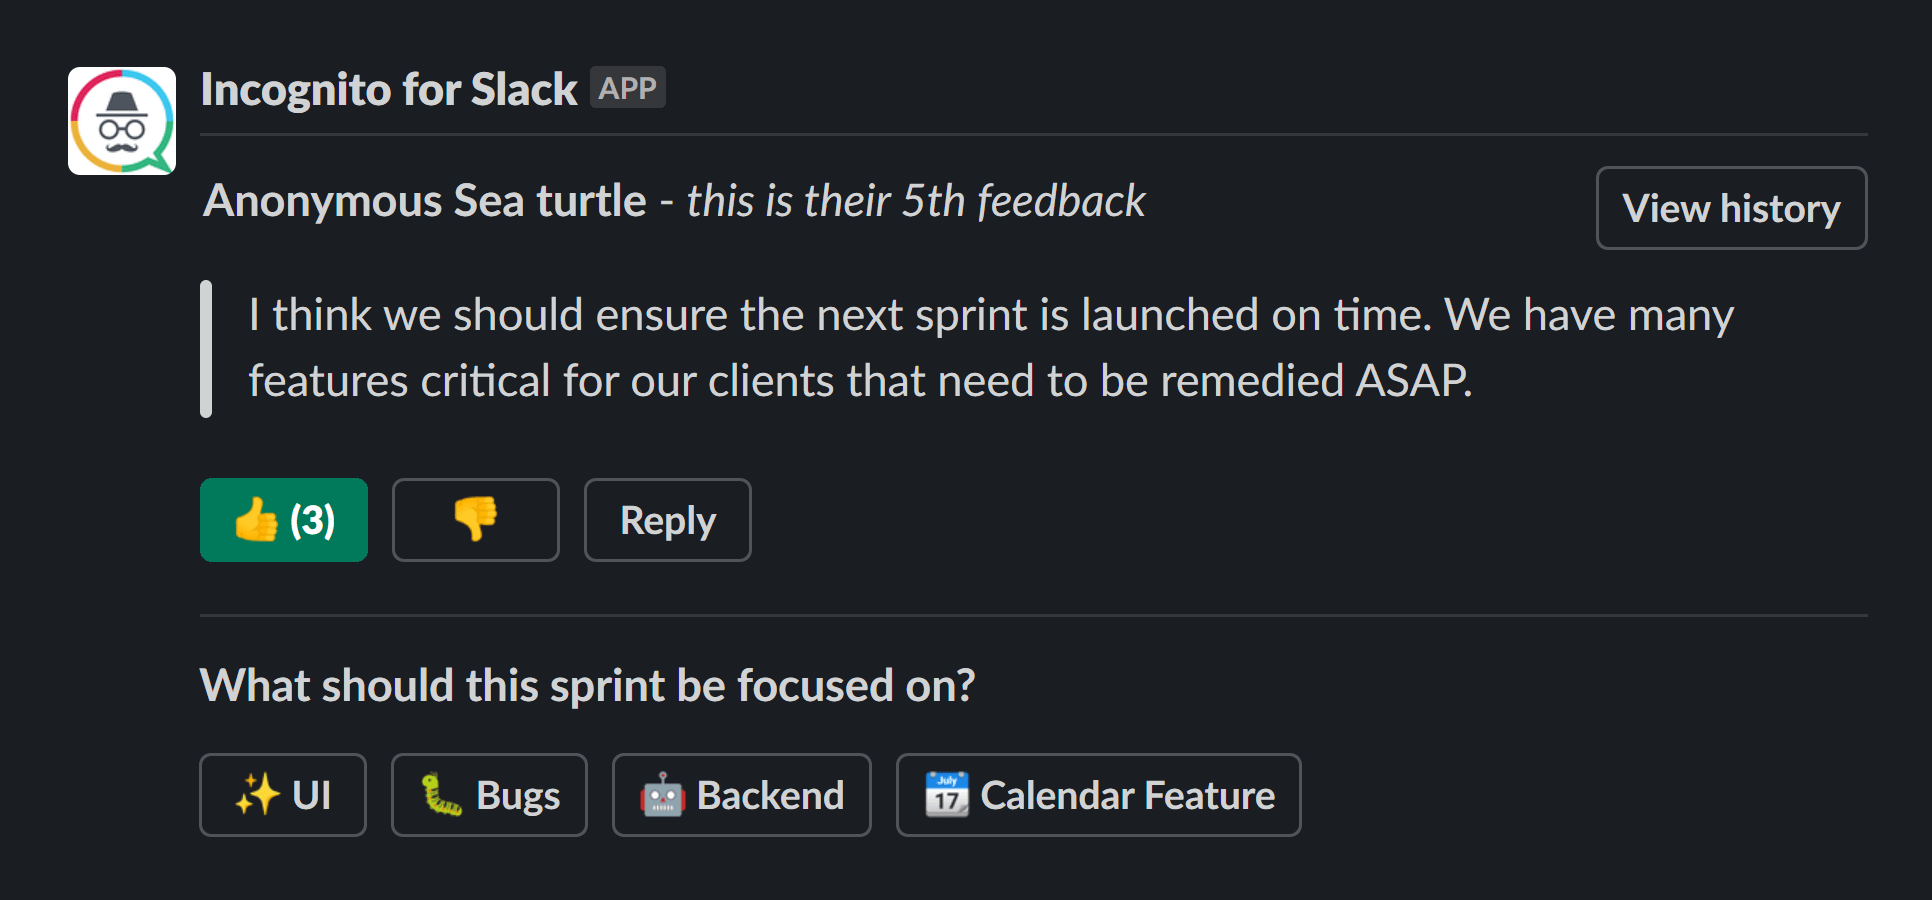 Send an anonymous poll on slack, or gather anonymous feedback from your team using Incognito for Slack.